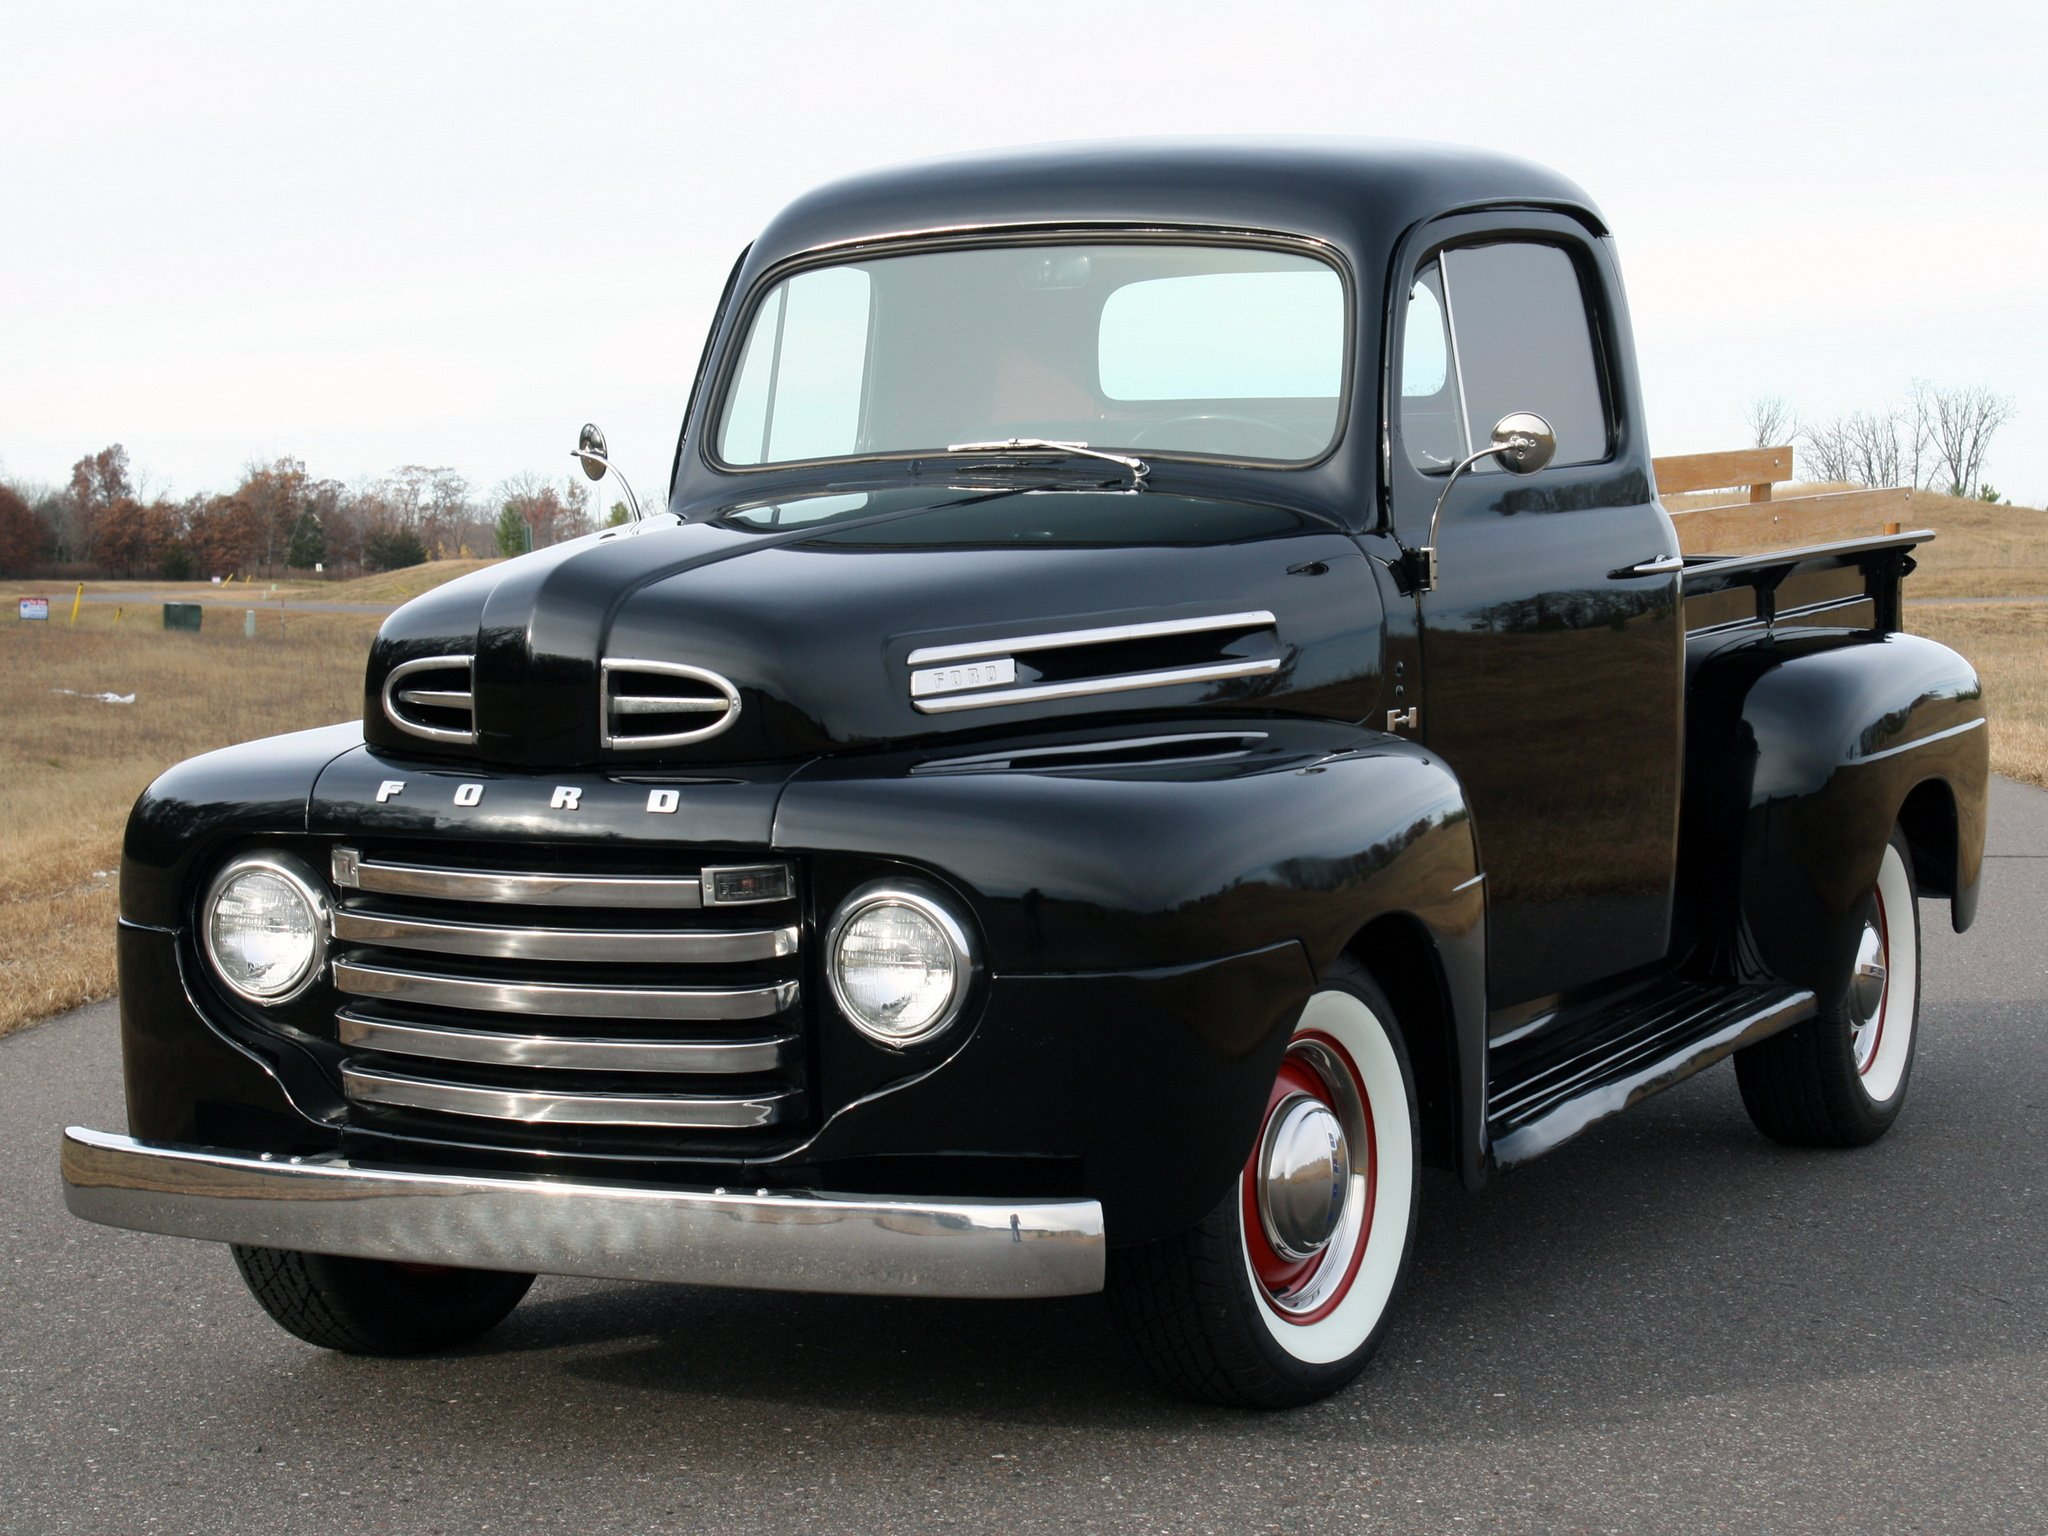 Pickup Trucks For Sale >> 1948aei50 Ford F-1 Pickup (83) retro gf wallpaper ...